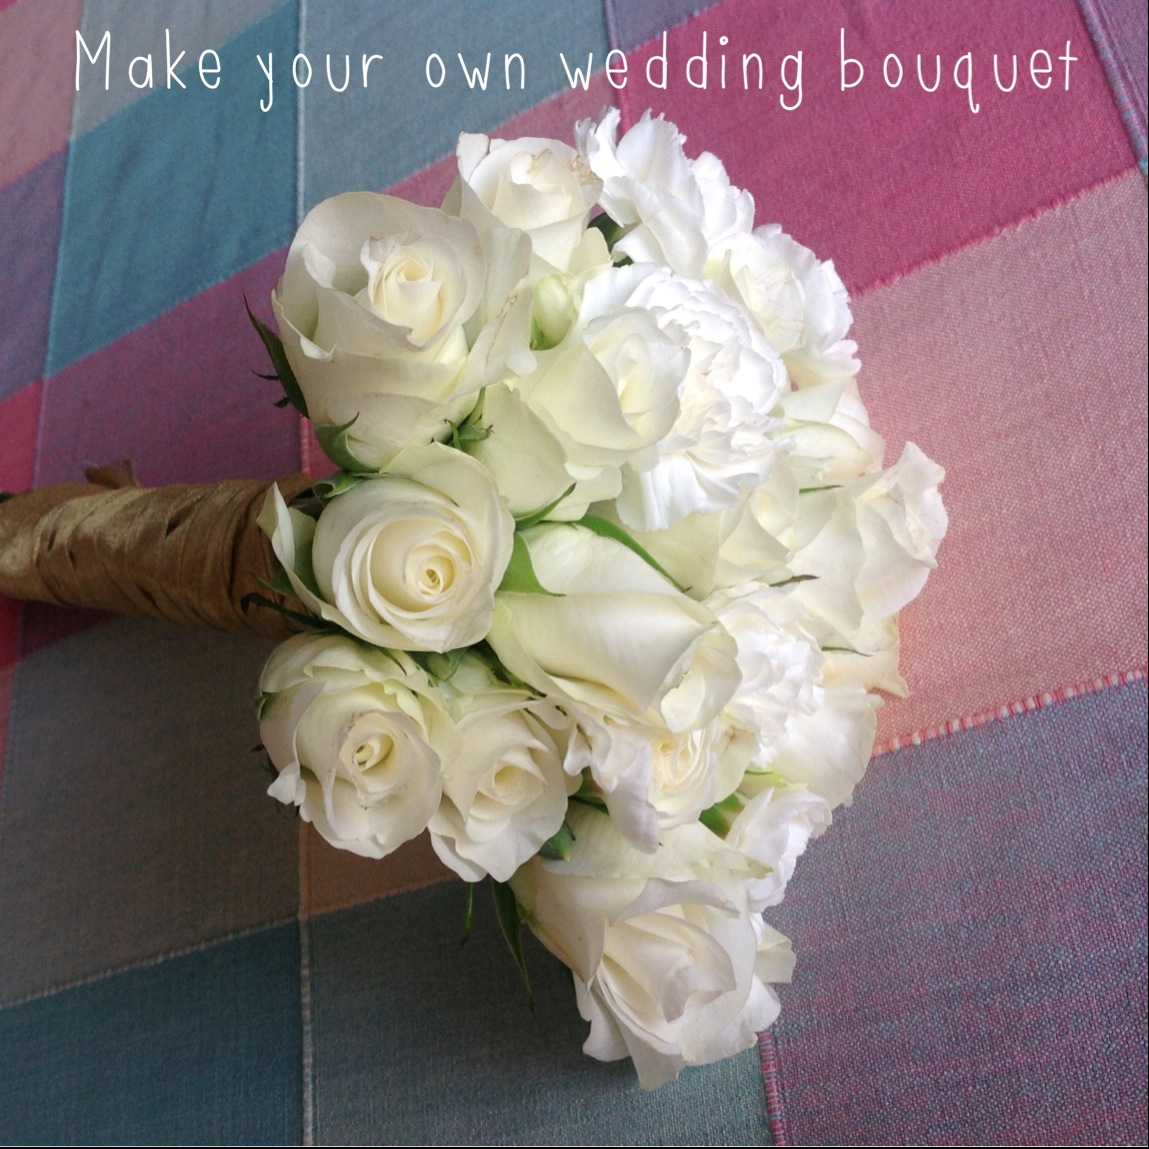 Make your own wedding bouquet | Hello! Hooray!